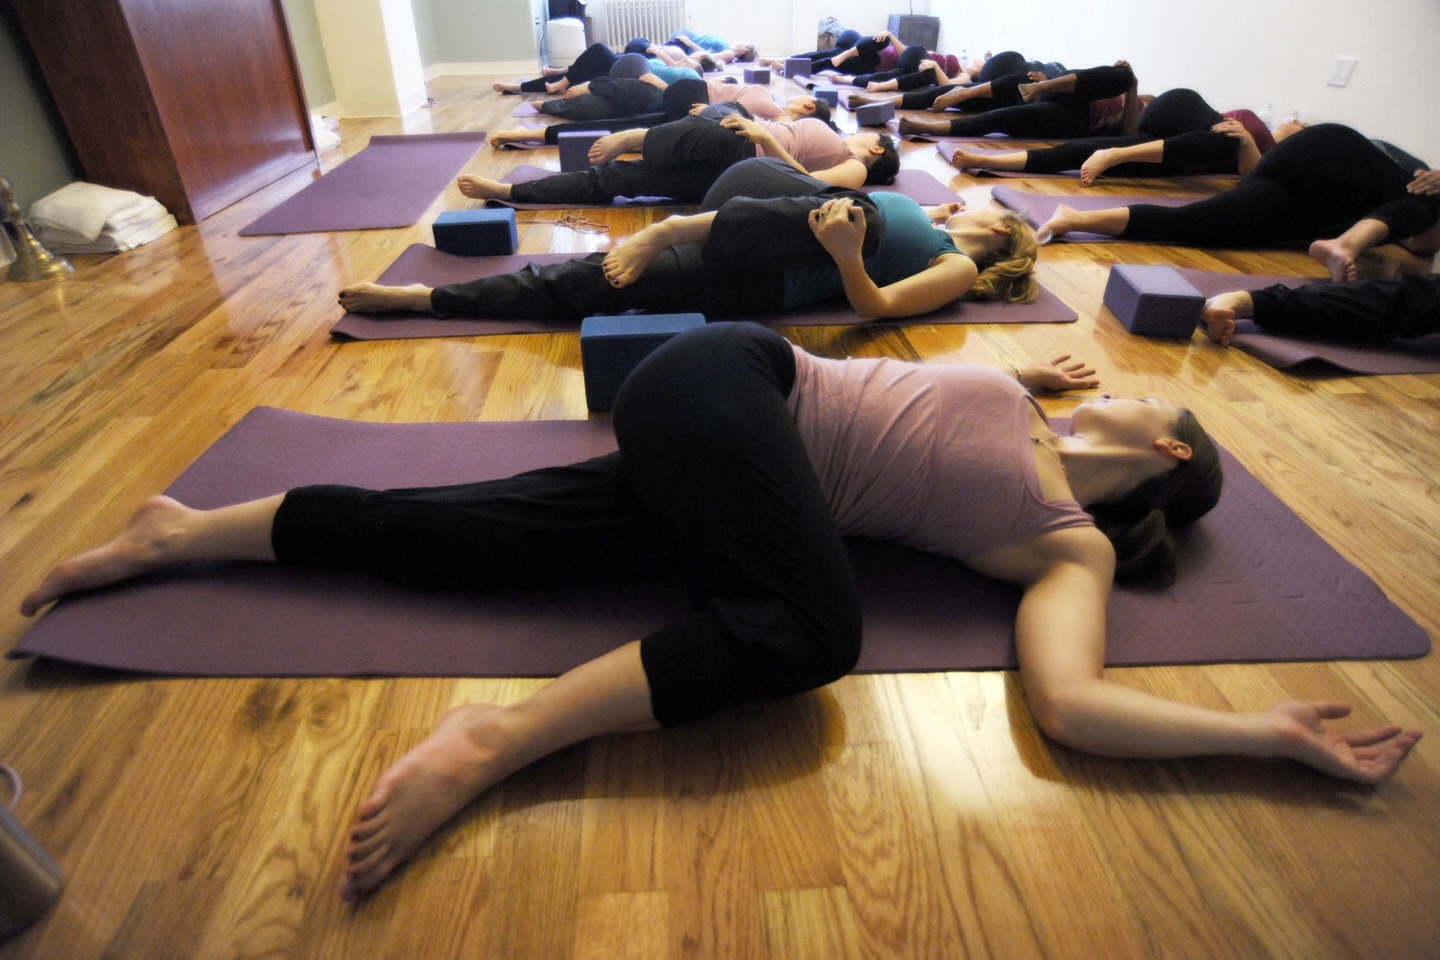 Supine twist: best to do before getting out of bed in the morning. On your back, hug your knees to your chest. Hold your legs behind the knees and gently bring your knees to the bed on your right side. Look to the left. Repeat on the other side. This move awakens your spine.